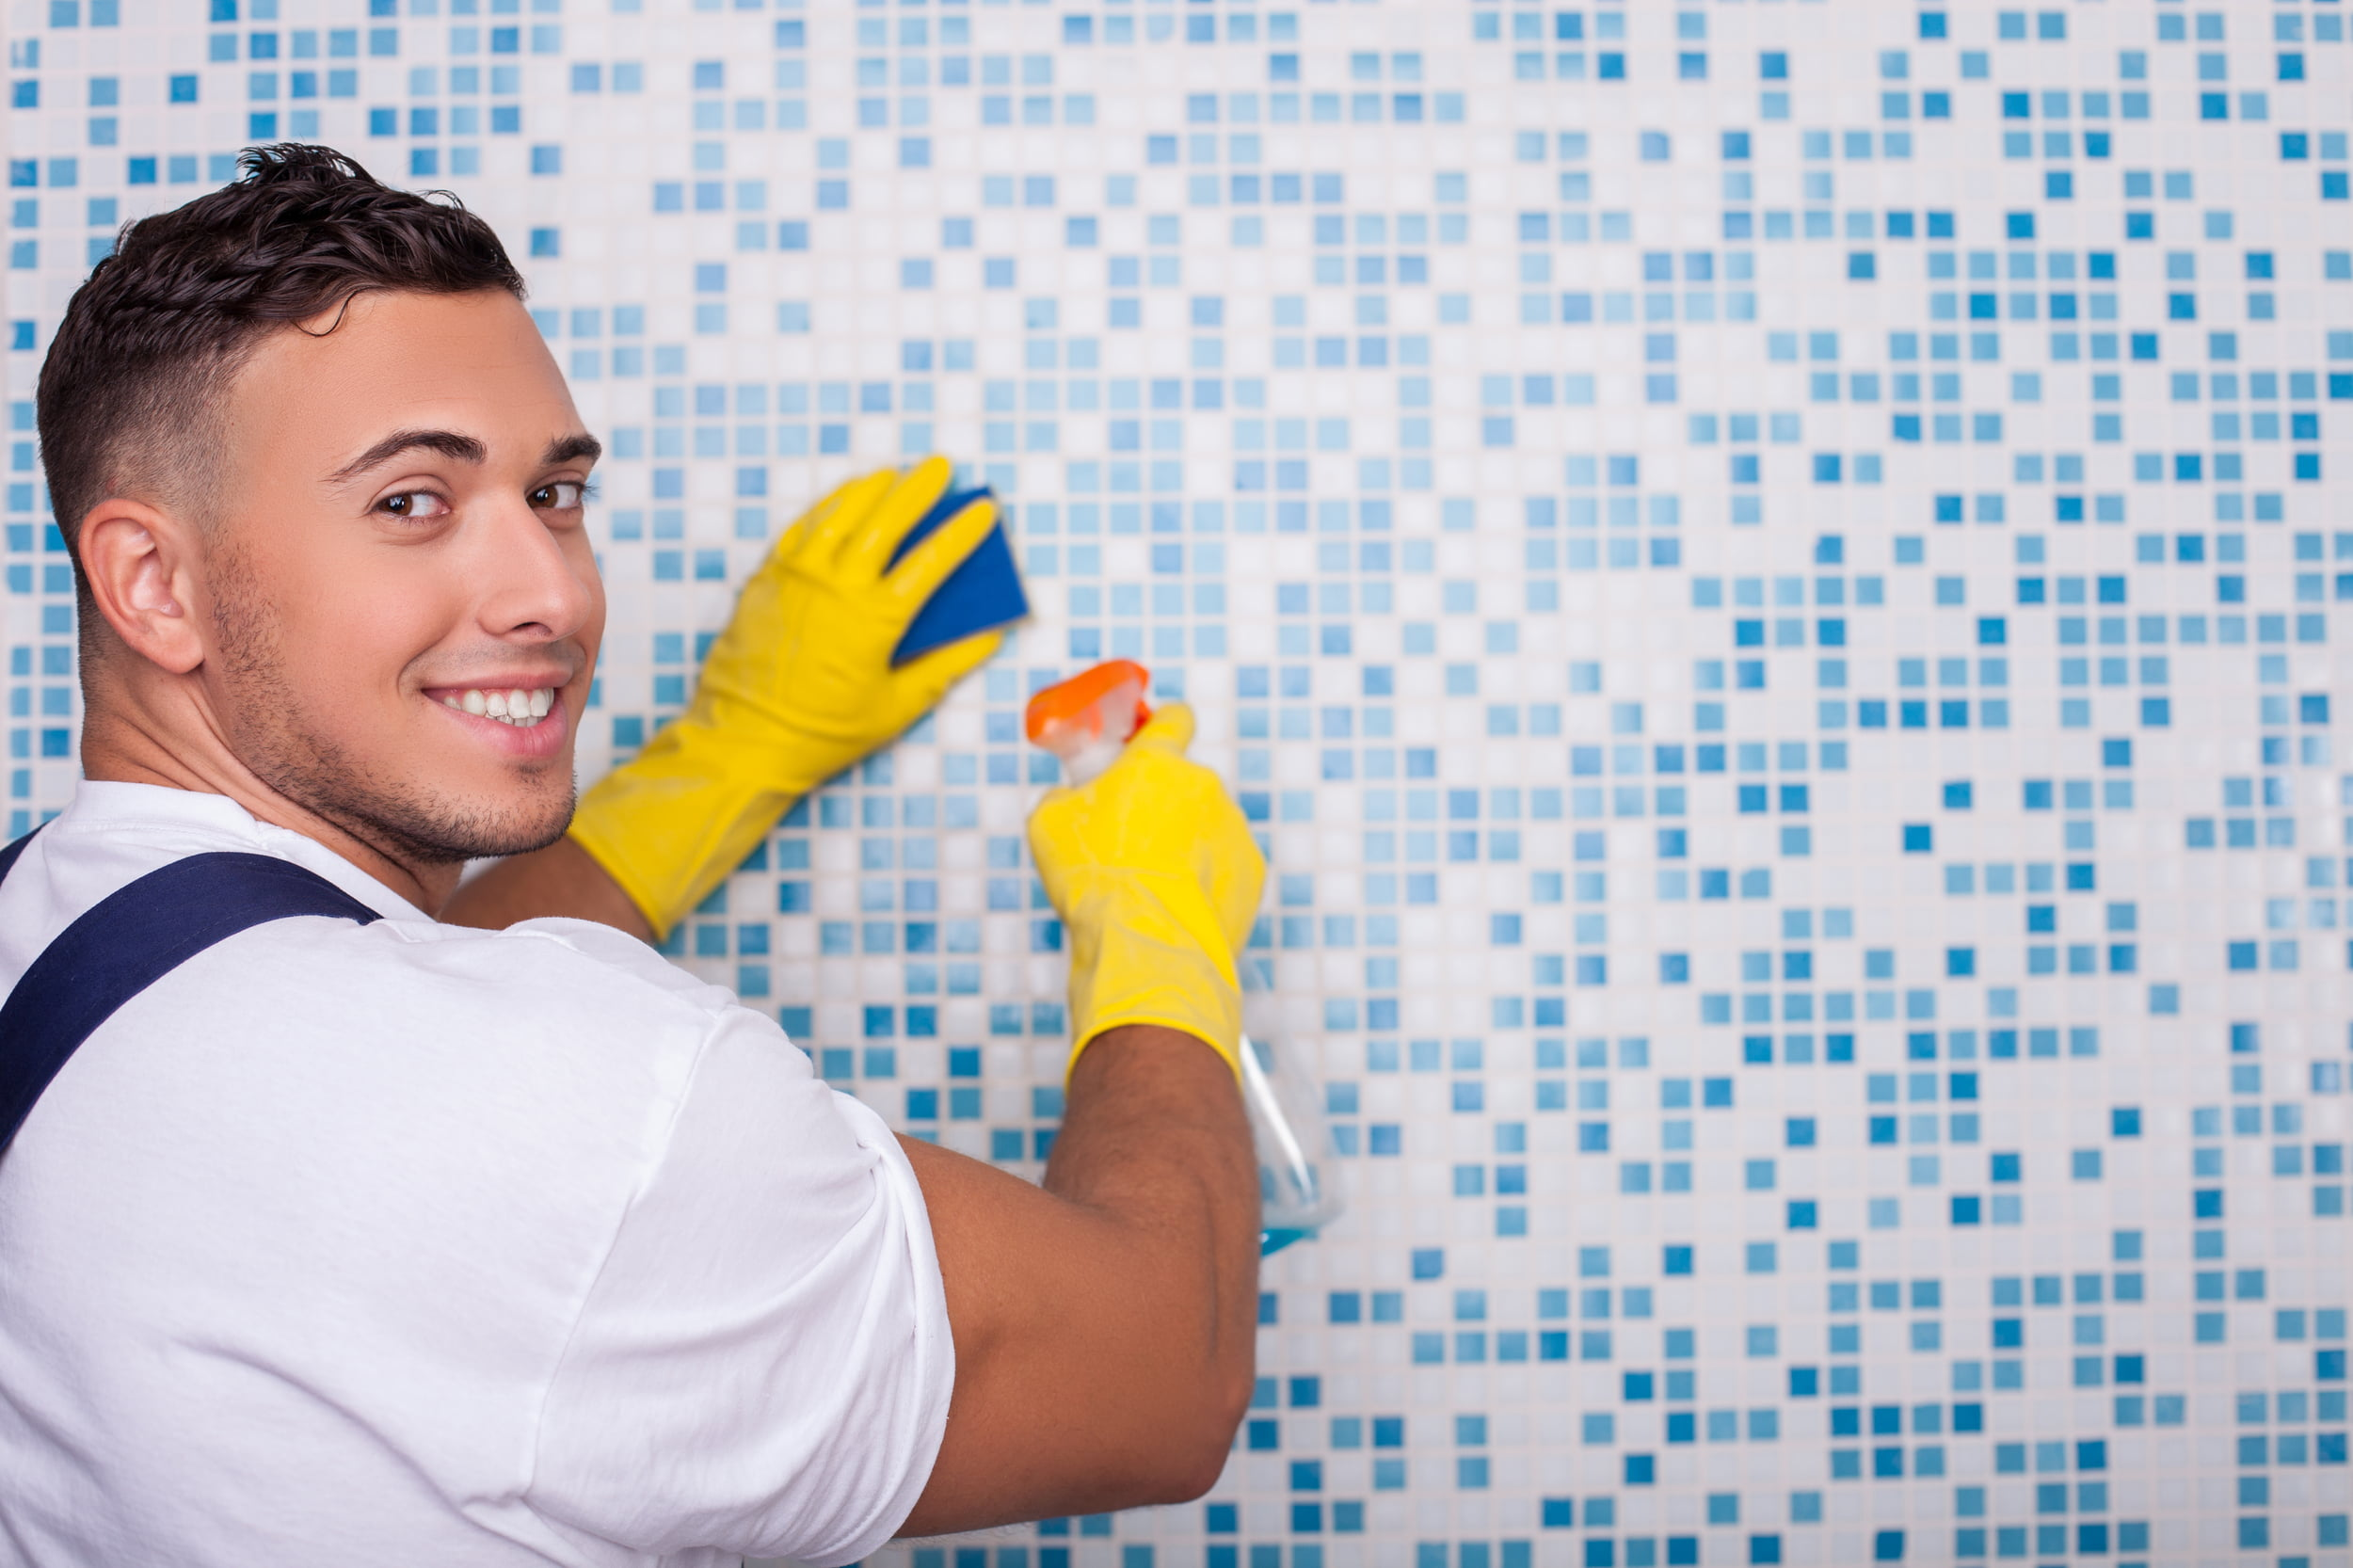 White man in white shirt an blue overalls, cleaning tiles. Star Clean Ltd, Cleaning, Cleaners, Commercial Cleaners, Domestic Cleaners. Bath, Bristol